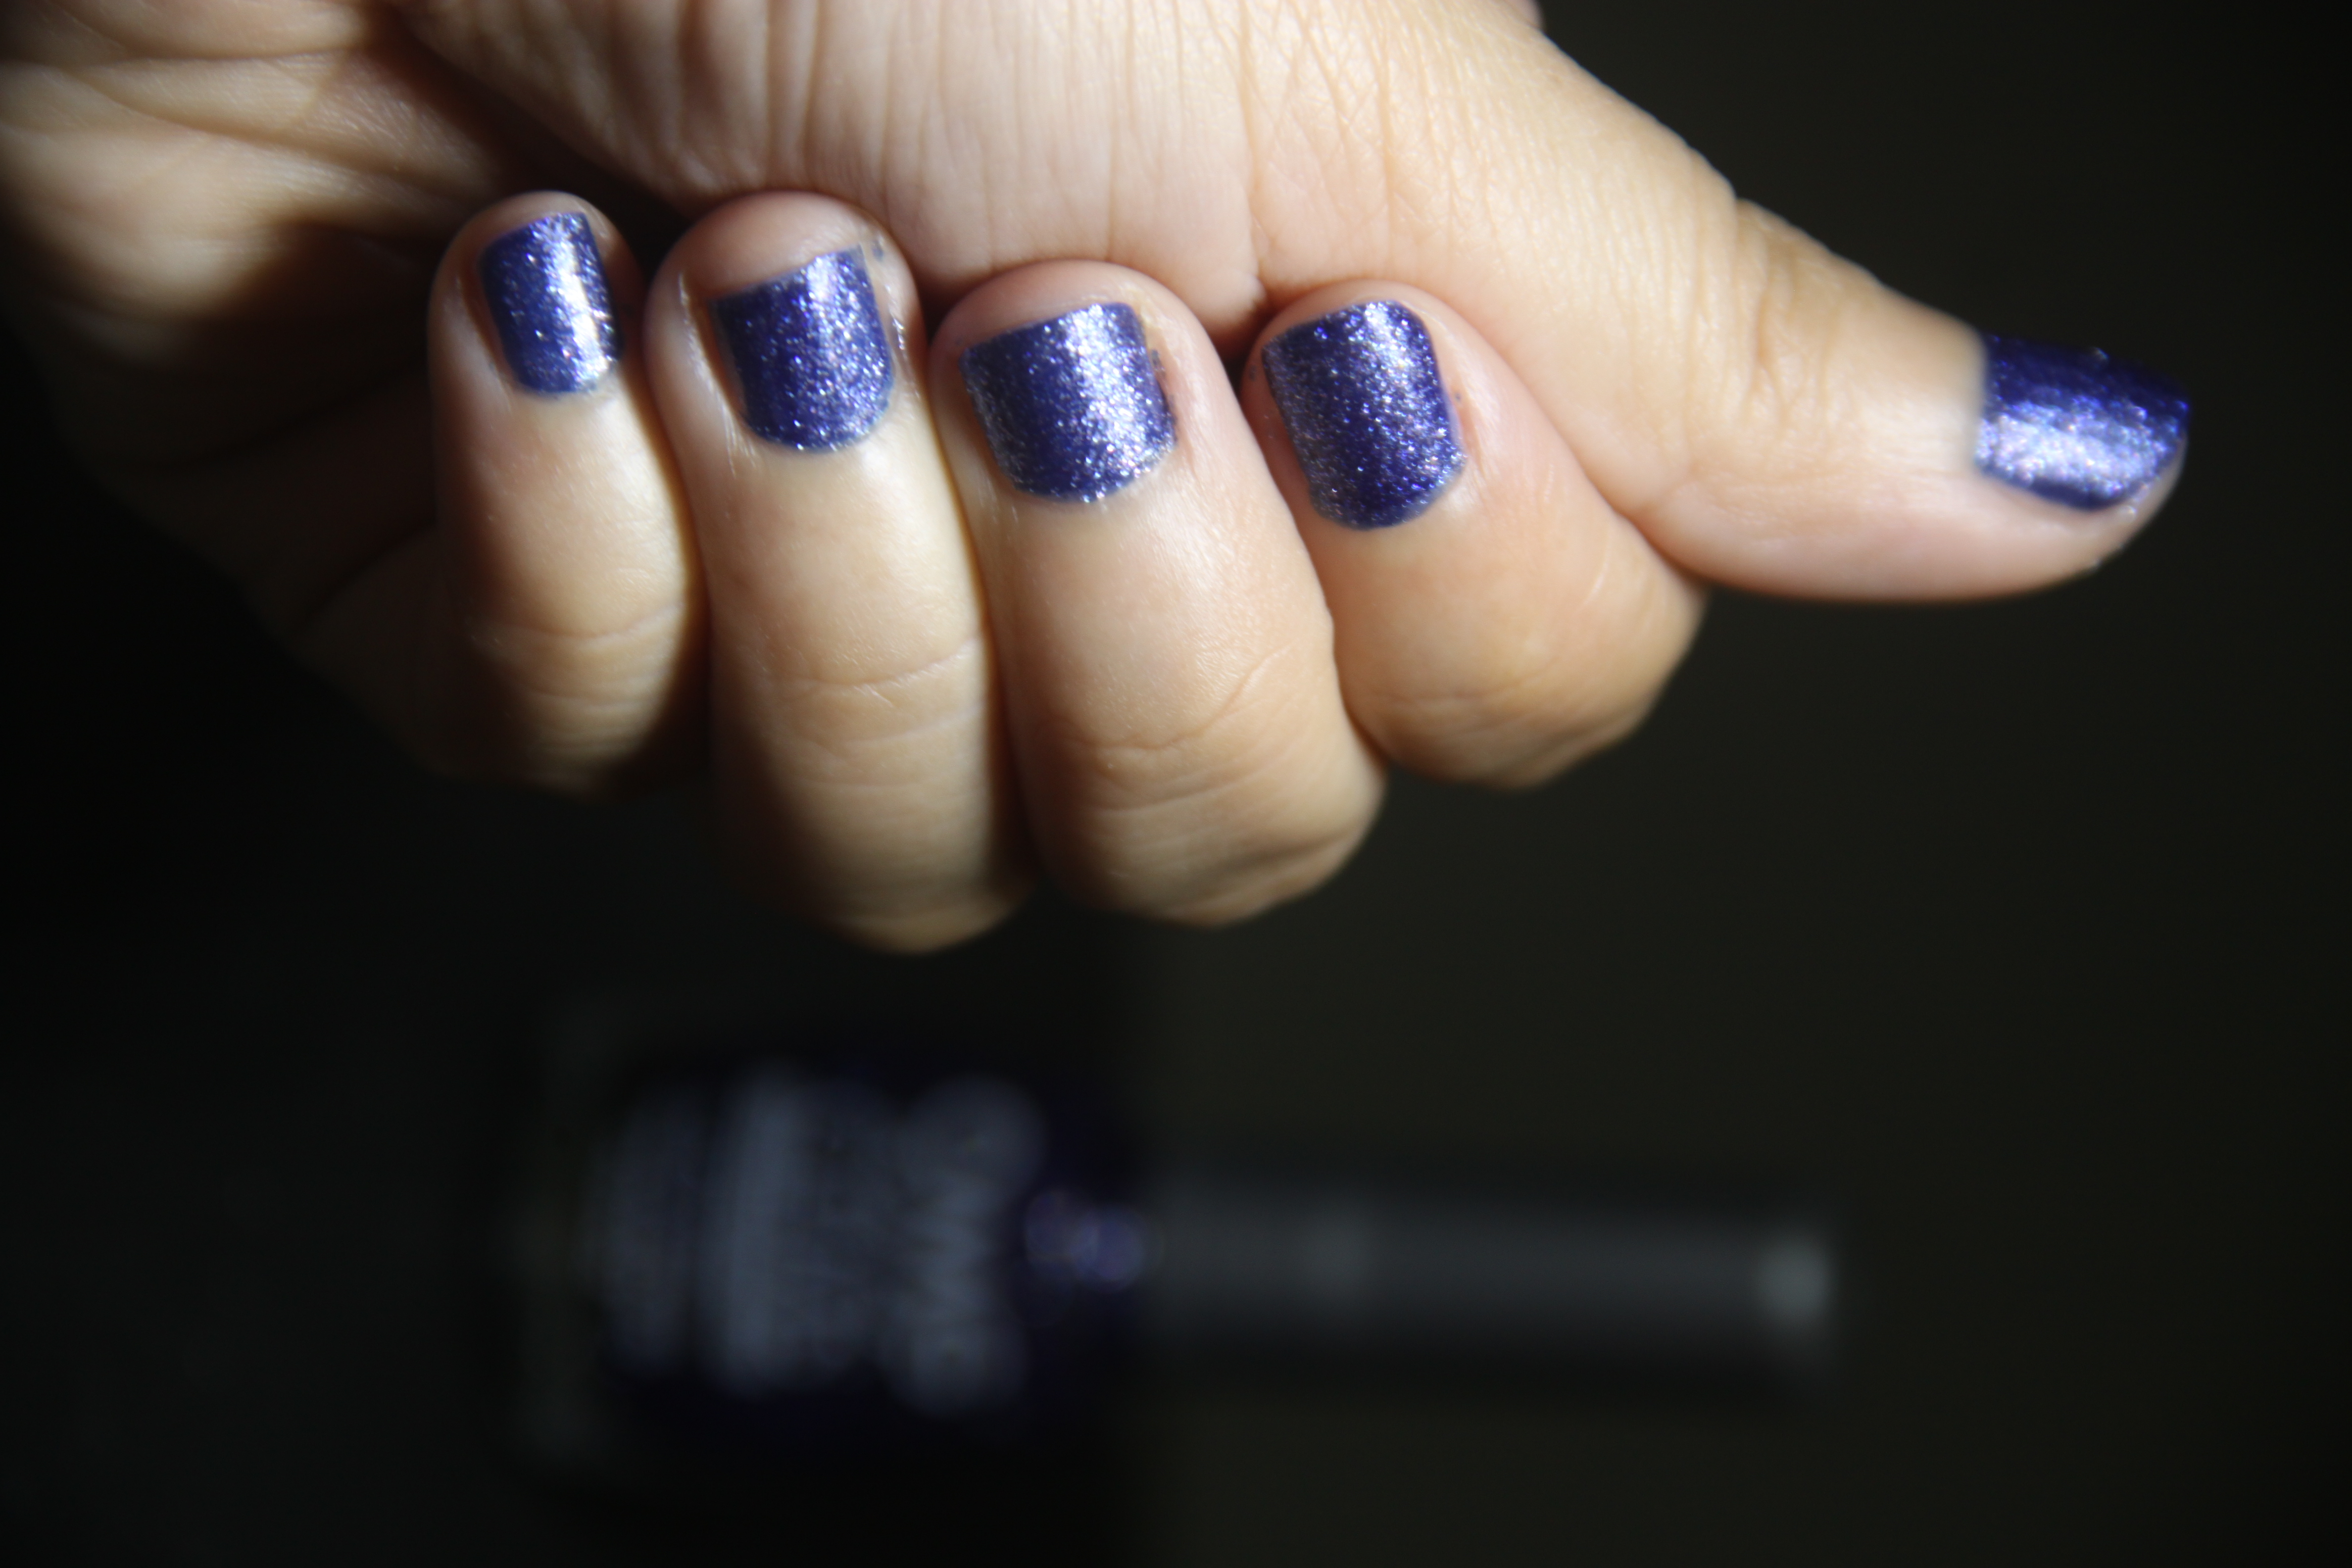 OMG NAILPOLISH OF THE MONTH: Release your inner Queen with OMG Gems ...